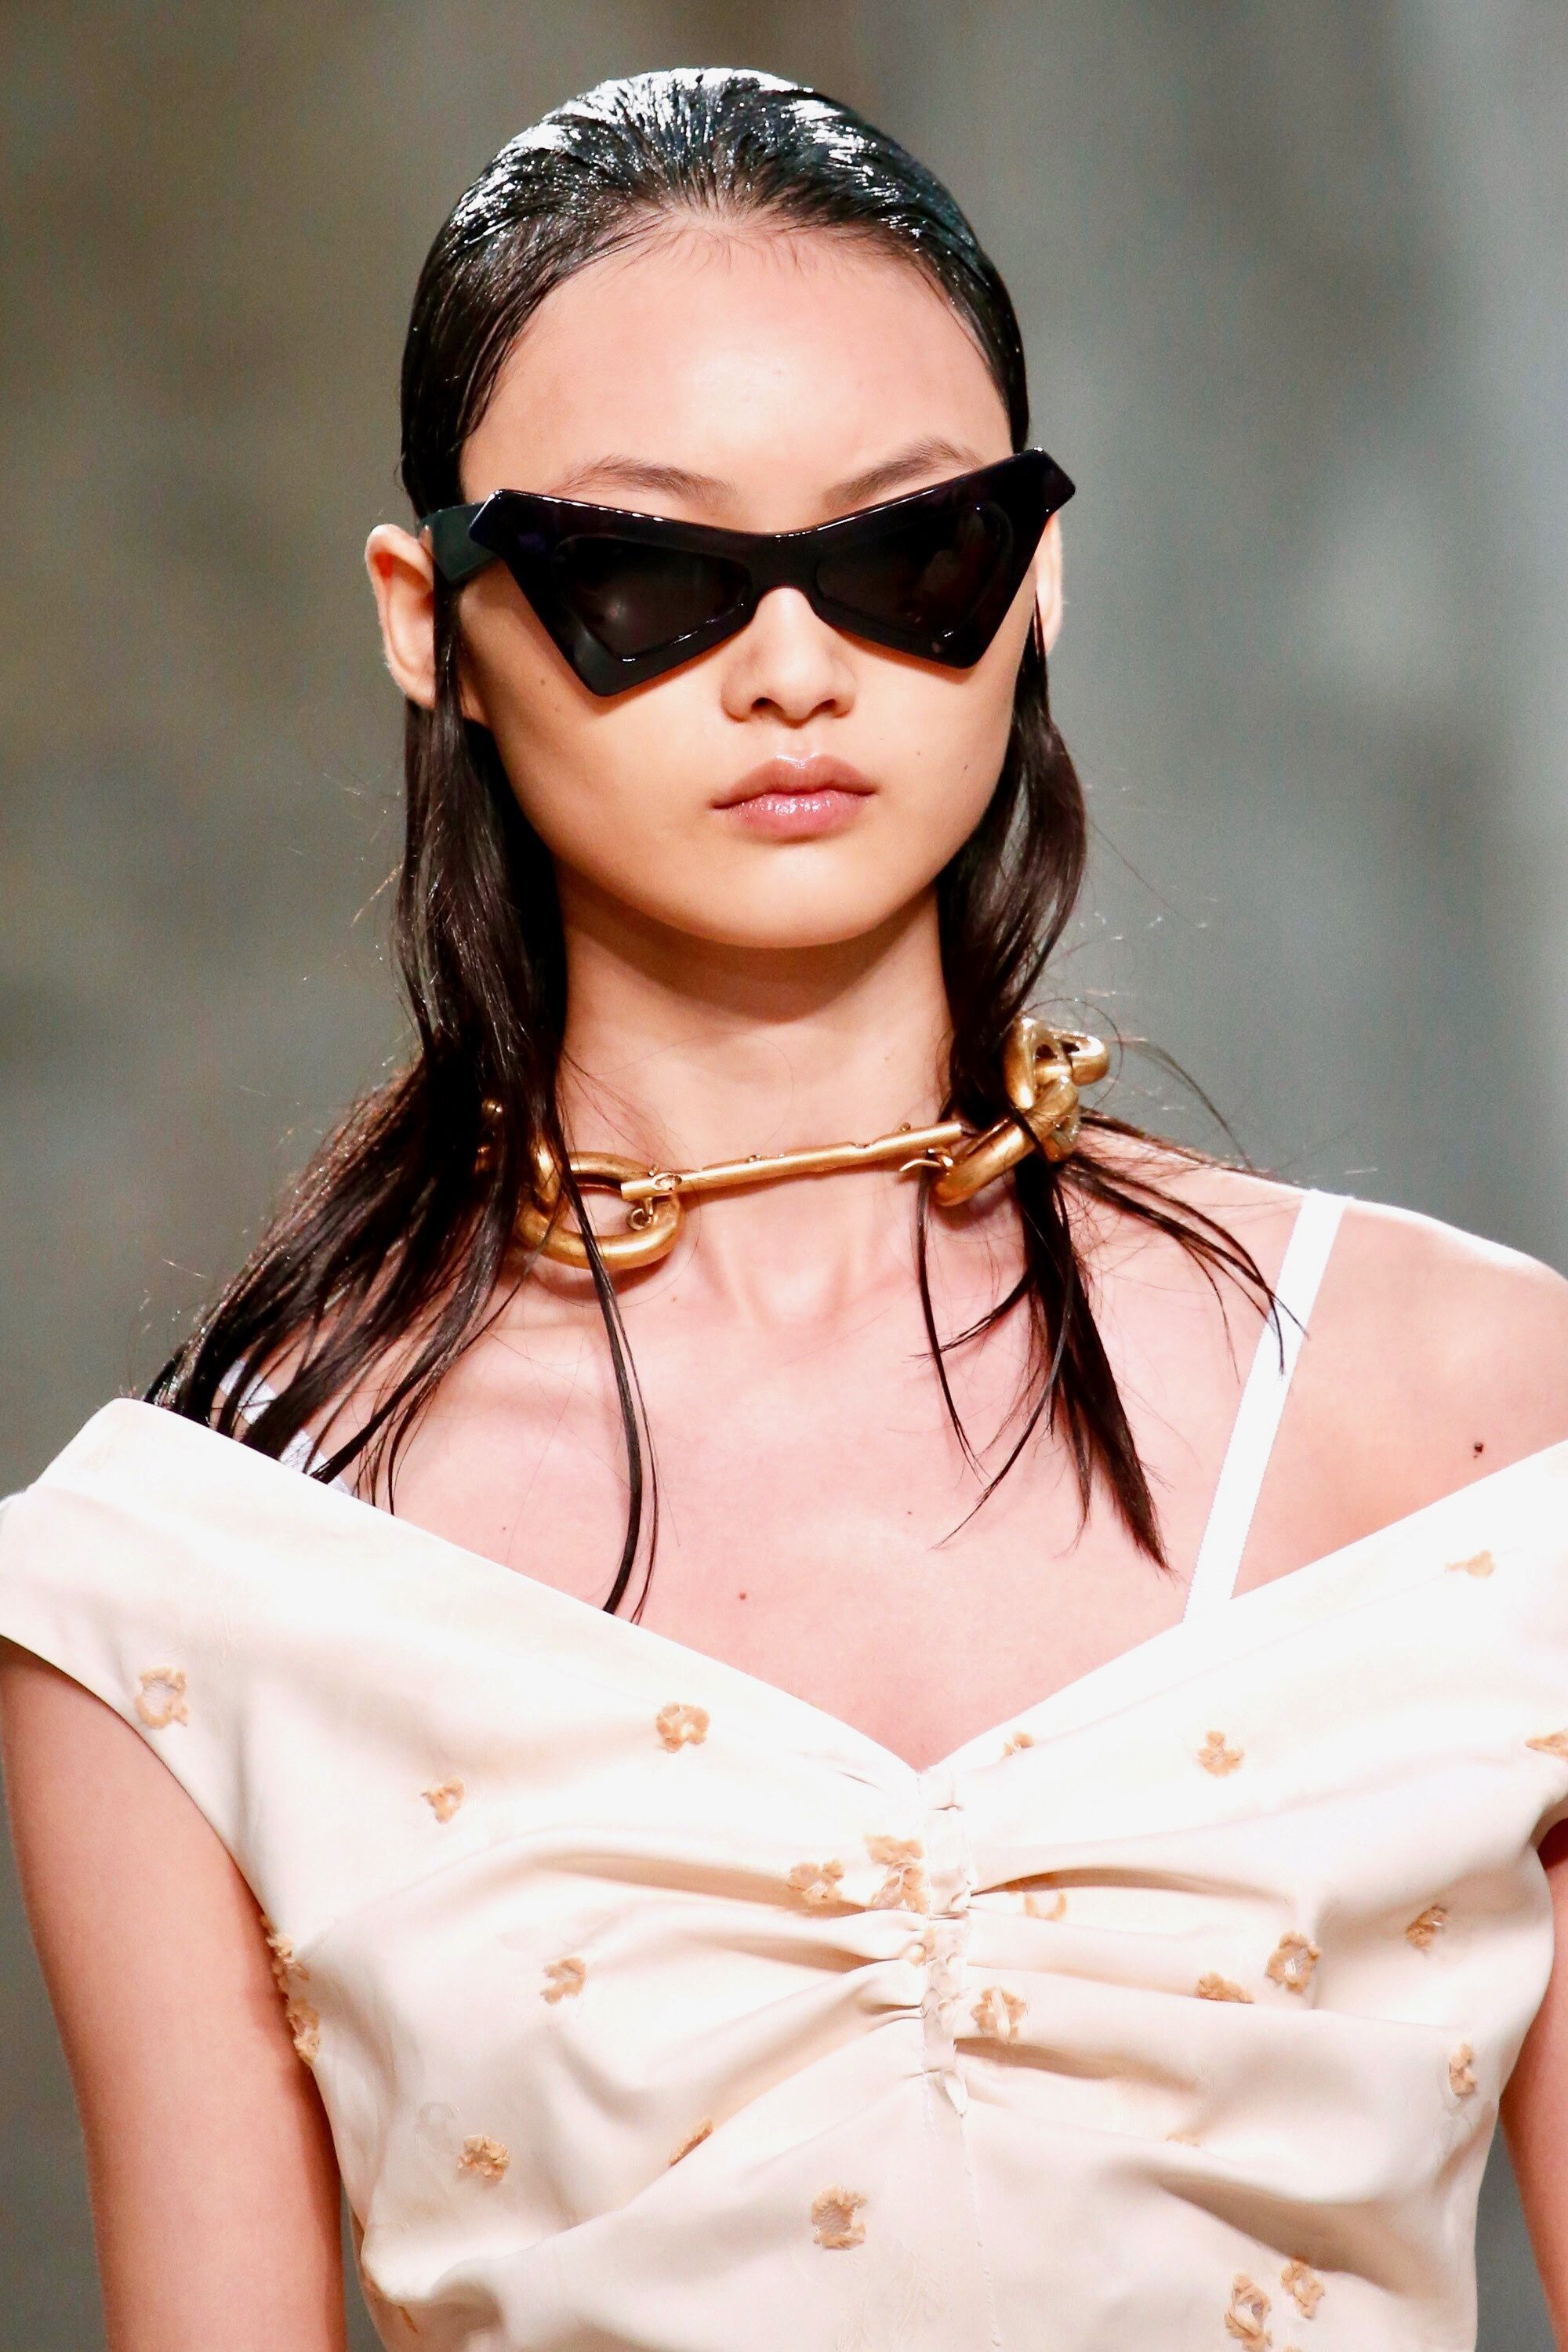 f110da274614b0 Marni SS19 Sunglasses | Accessories in 2019 | Fashion, Trending ...